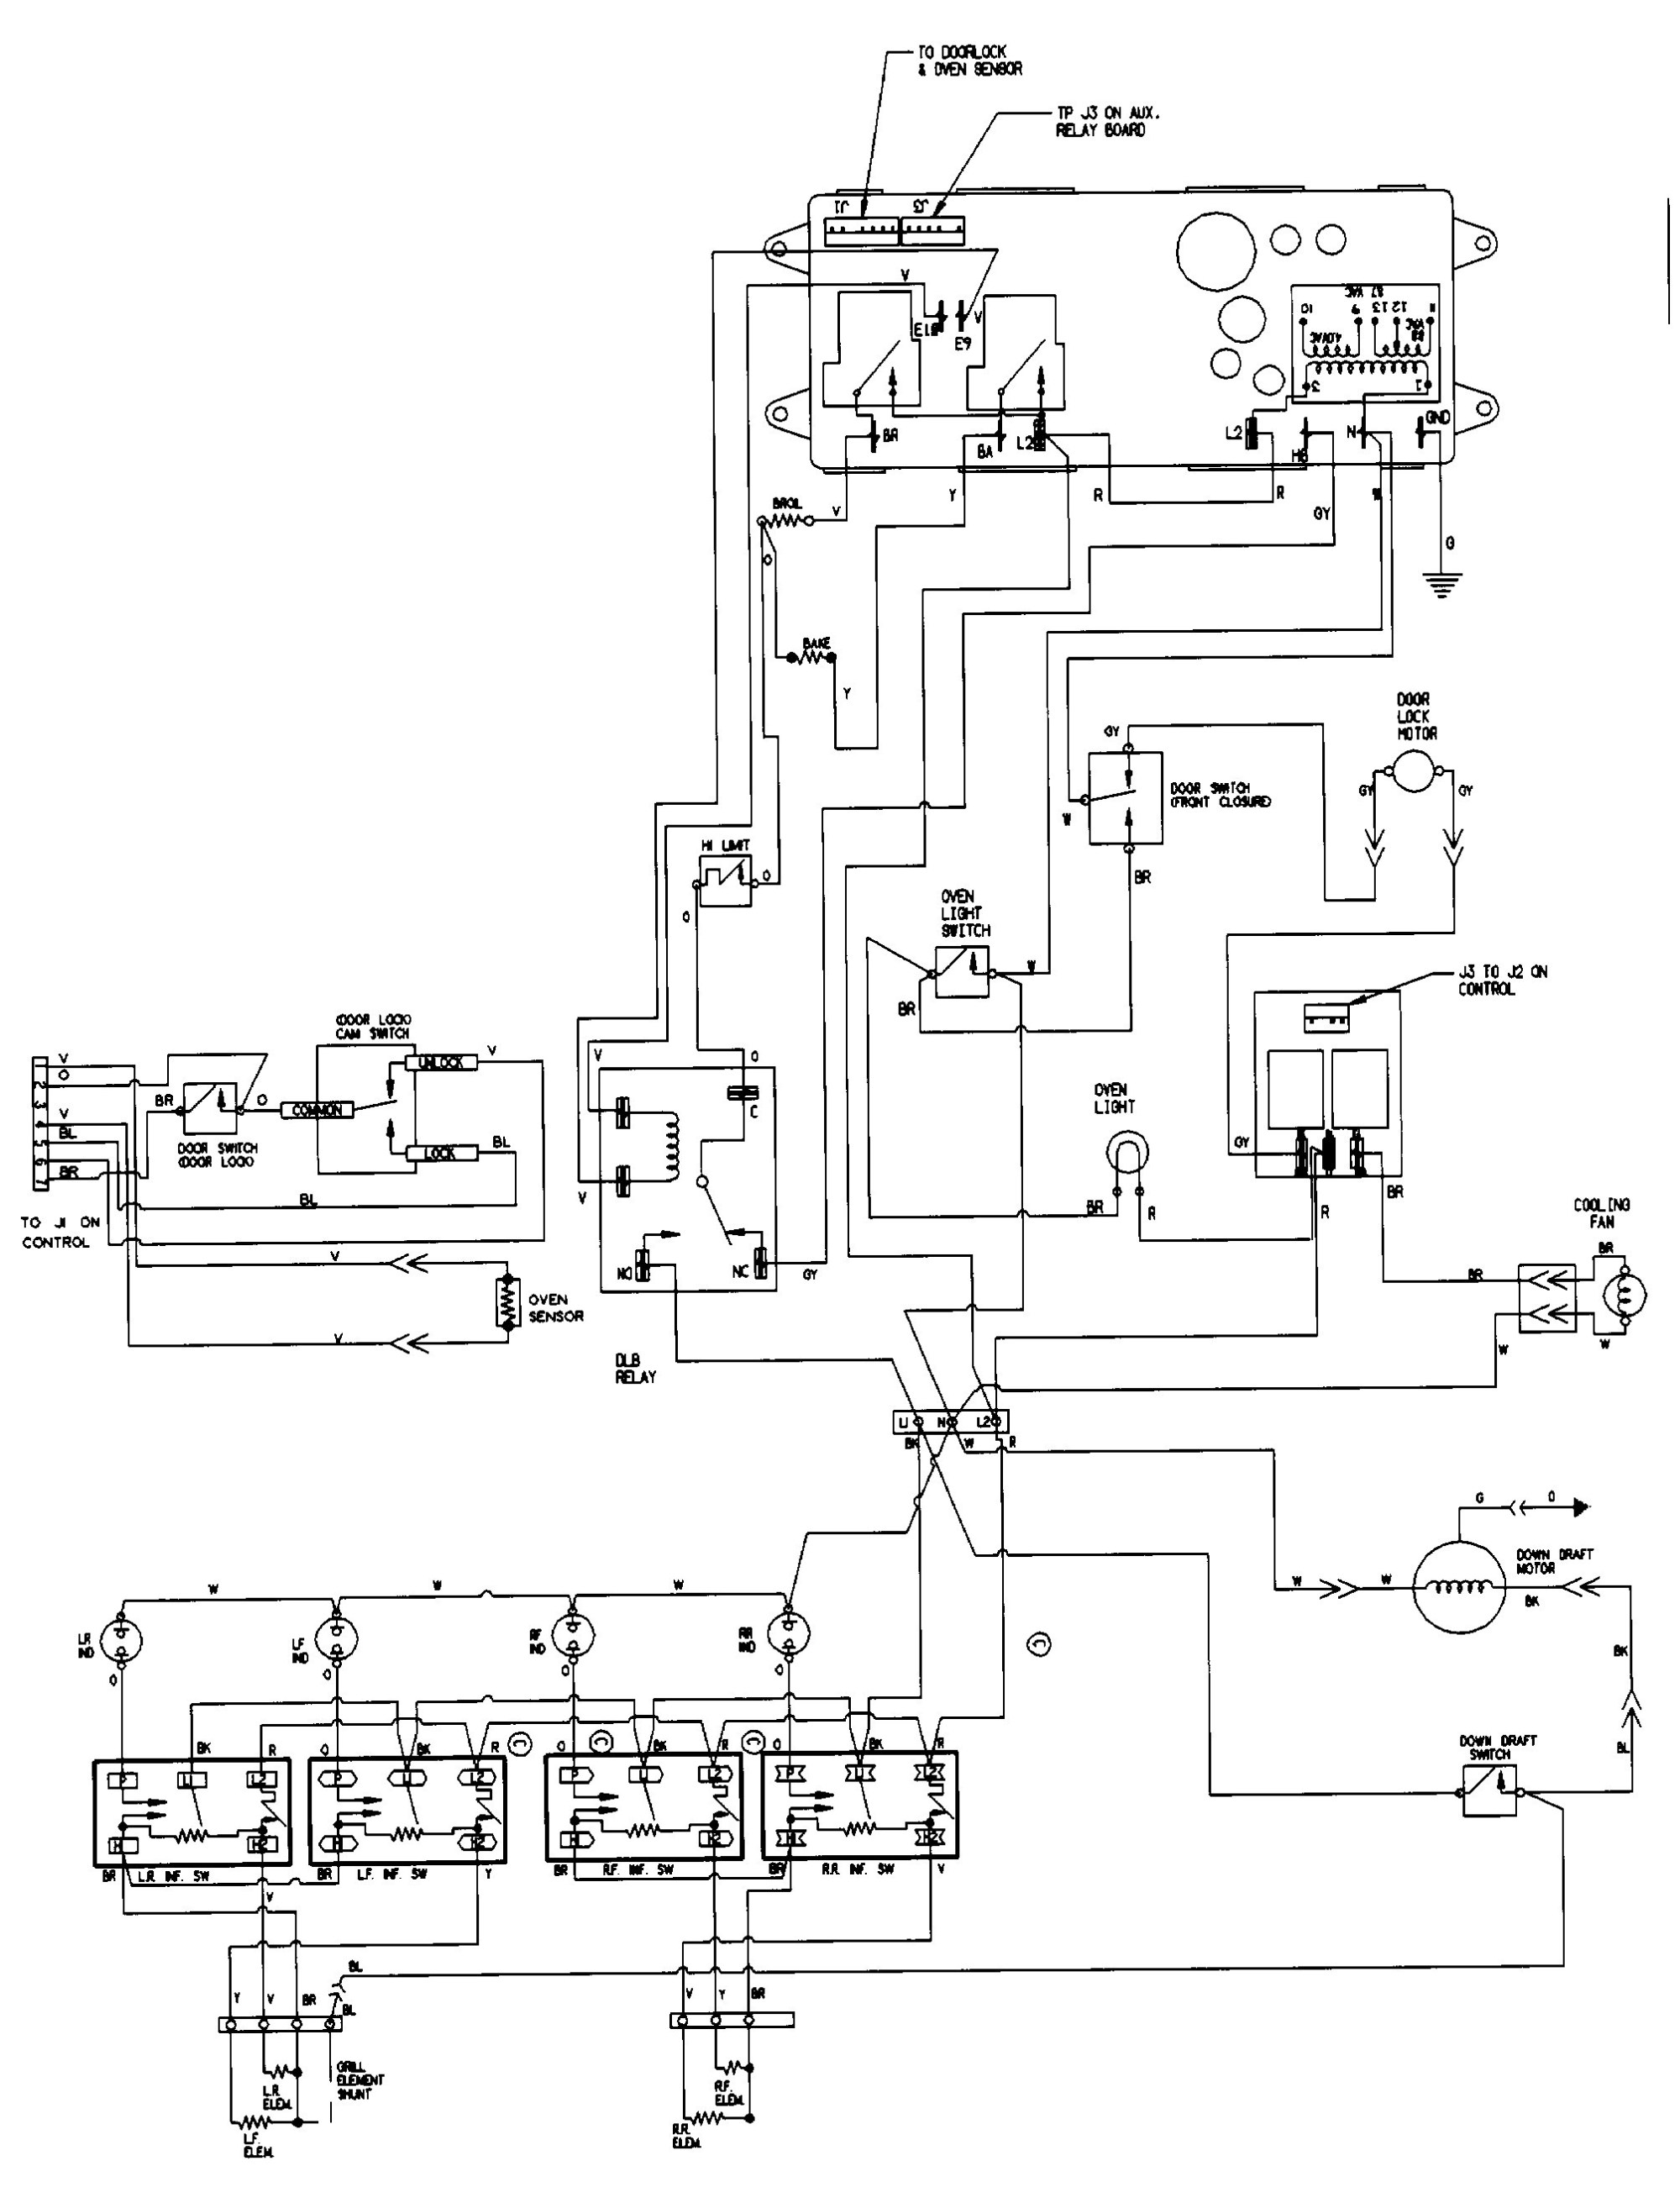 hight resolution of fuse diagram for a 1992 pontiac grand am moreover 1928 pontiac sedan fuse box diagram further 2005 pontiac grand am 3400 motor diagram